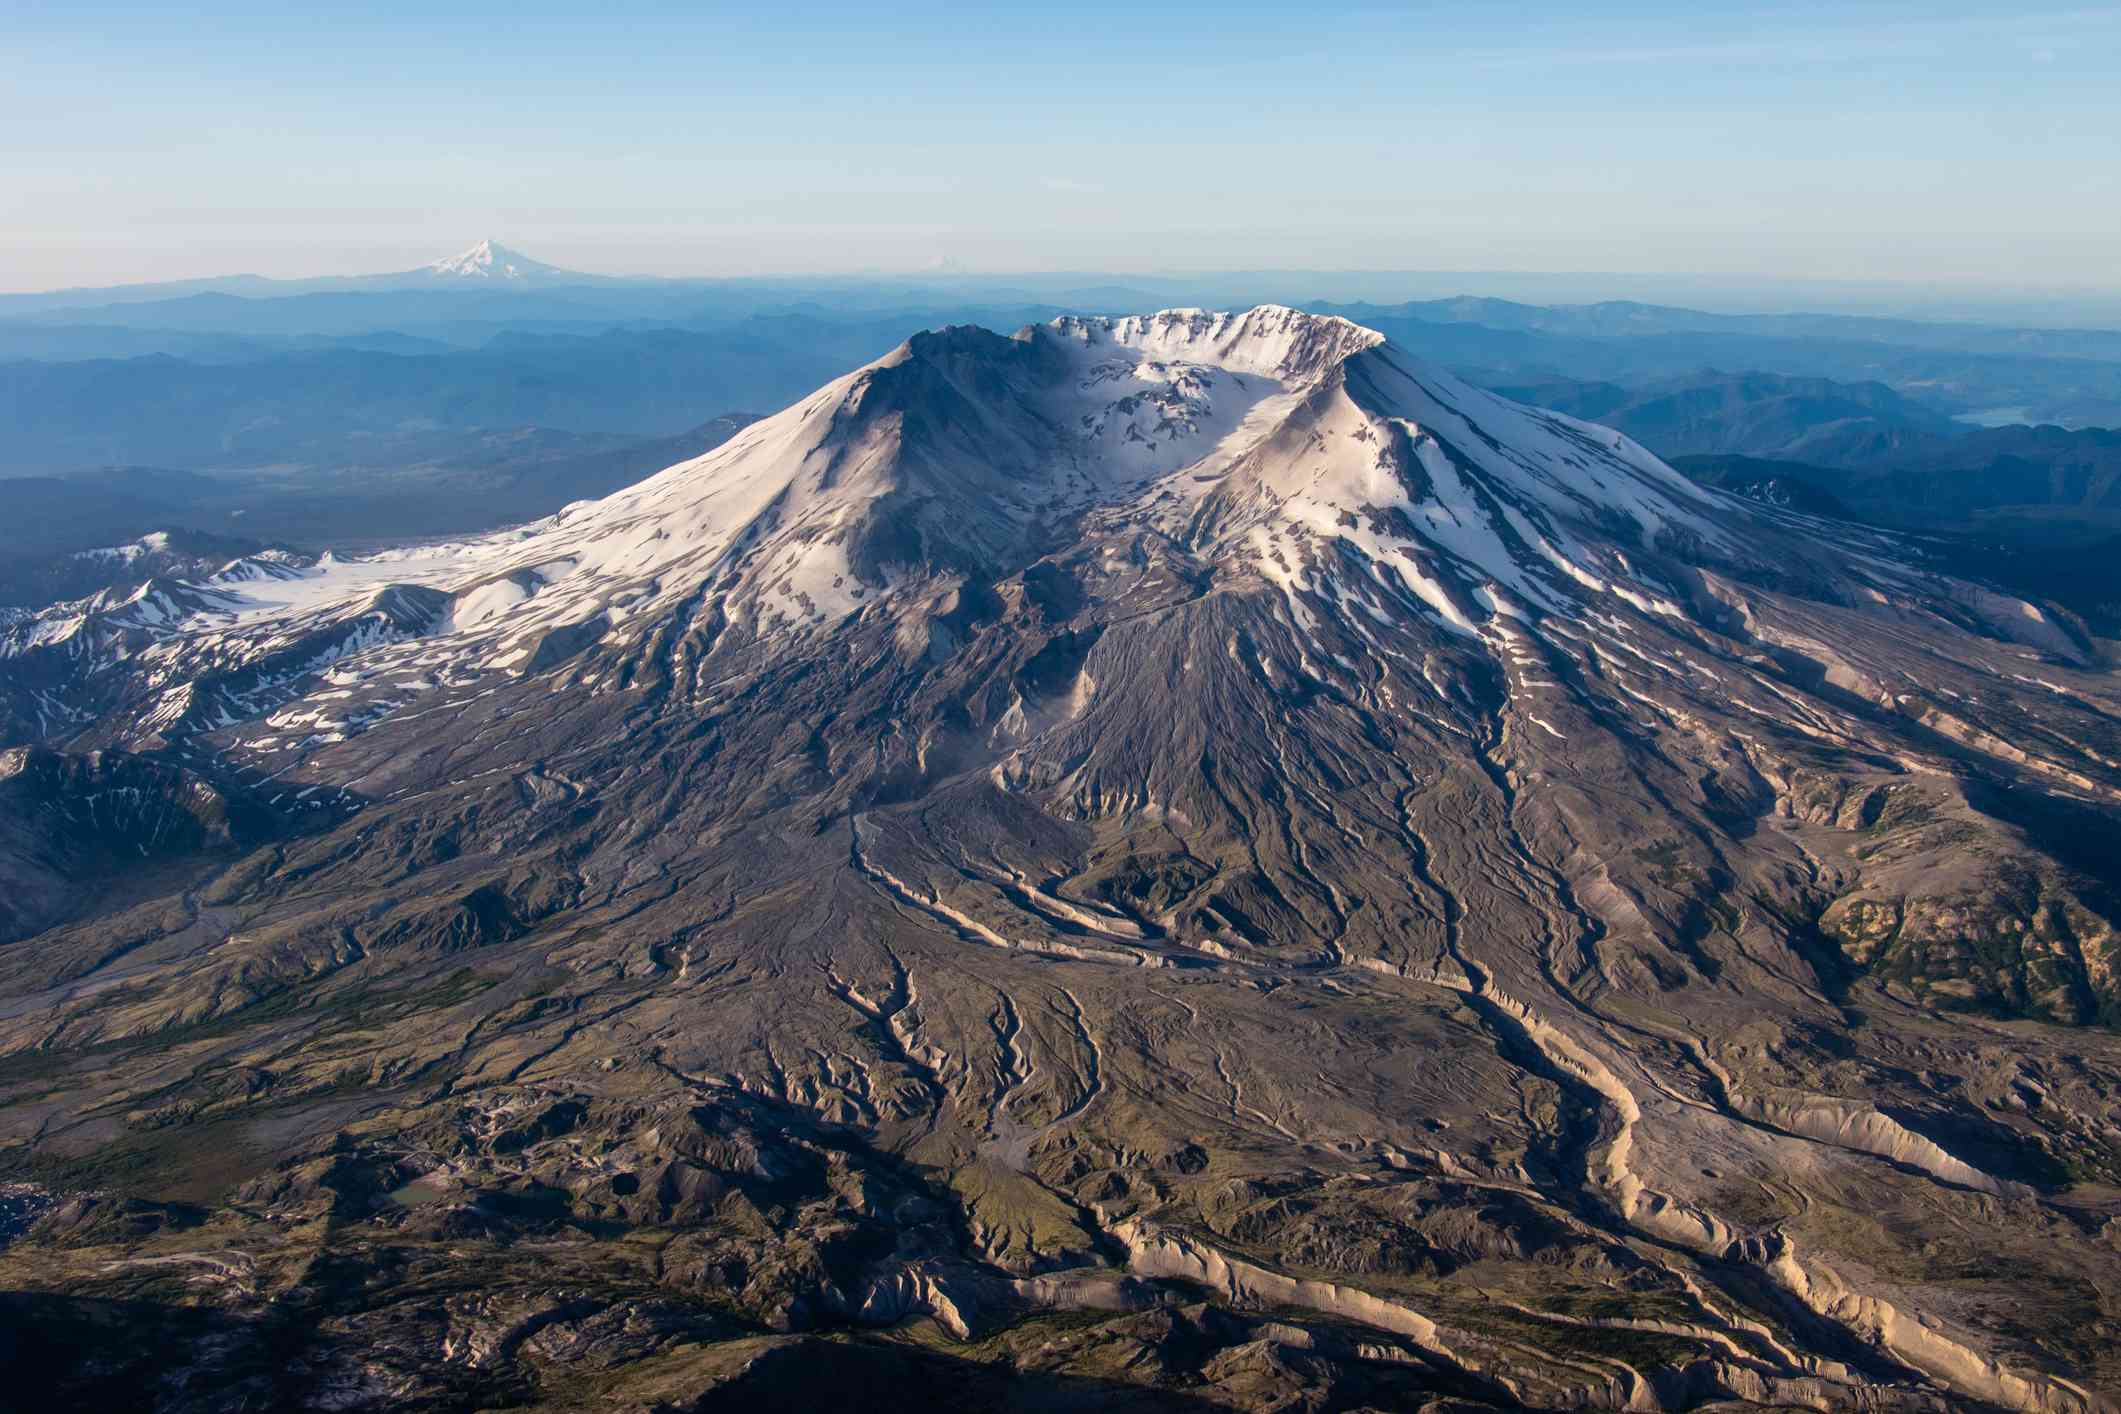 Aerial view of snowy Mount St. Helens and surrounding landscape